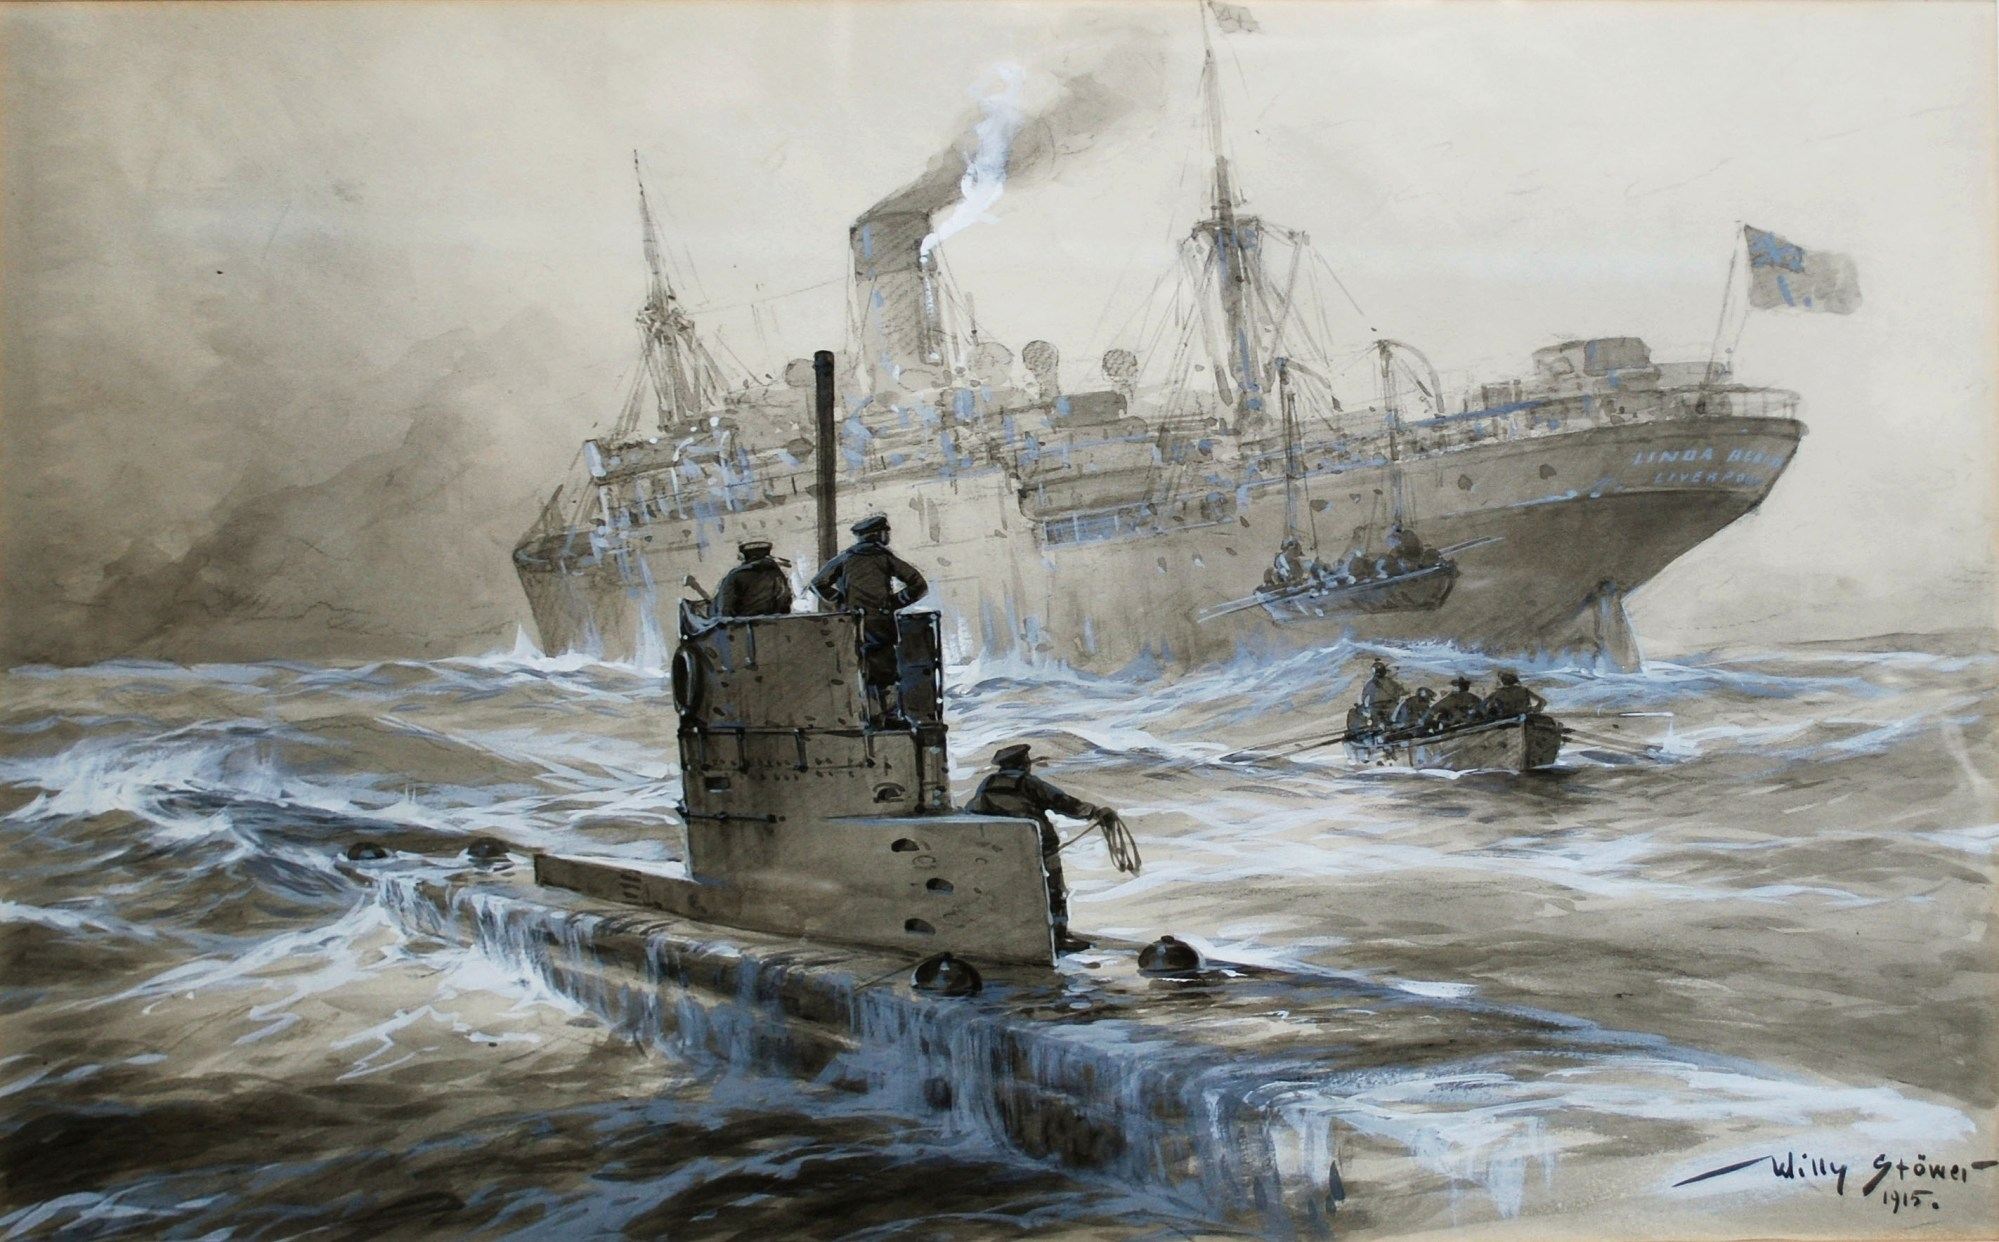 hight resolution of sinking of the linda blanche out of liverpool by sm u 21 willy st wer